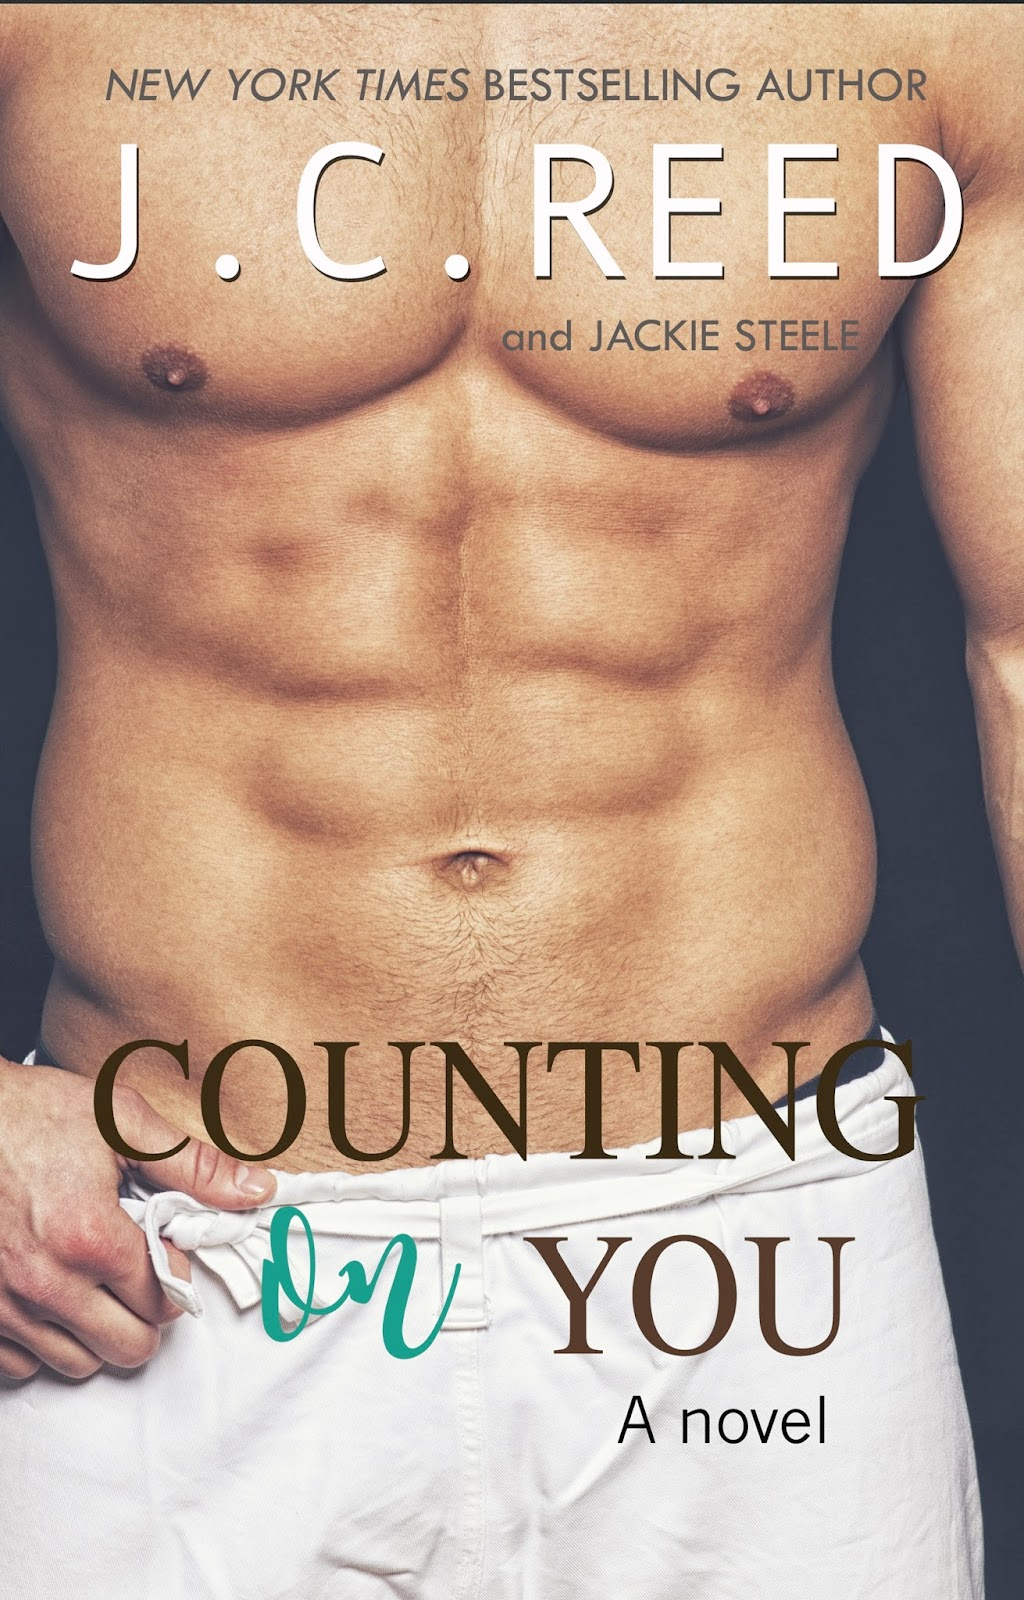 From New York Times Bestselling Author, J.C. Reed, and Jackie Steele comes a new standalone novel.  I have everything I want. Success. Wealth. Women…and make that plenty of those. As a filthy-rich CEO, I would say I'm pretty much close to perfection. Except for that one weakness: I'm cocky as hell, and an irresistible magnet for women.  So when one tiny mistake lands me in hot waters with the investors, I have one hell of a choice to make:  Restore my reputation… Or risk losing my company.  I'm a man of my word and failure is not an option. Not now. Not ever. I fully intend to uphold my responsibilities.  Sharing an apartment should be easy, right? And it's only for six weeks. That's what I thought before I found out that my new roommate is female. And wow. Vicky Sullivan is unlike any woman I've ever met. She's hot as sin, and crazy. Definitely not my kind of crazy, but too hot to pass up. There's something about her that makes me rage with want. I don't like her, but obviously my dick does. And what he wants, he gets.  Six weeks… Living together shouldn't be too hard… Until my best friend challenges me to a bet… I make it my mission to make her mine.  There's only one problem. I have to break…Every. Single. Rule. And did I mention she's completely off-limits?  It's too late to say no.  Author's note – Counting On You is a  full-length, standalone novel with no cliffhanger.    AMAZON US / AMAZON UK /  B&N / KOBO / GOOGLEPLAY   /   iBOOKS